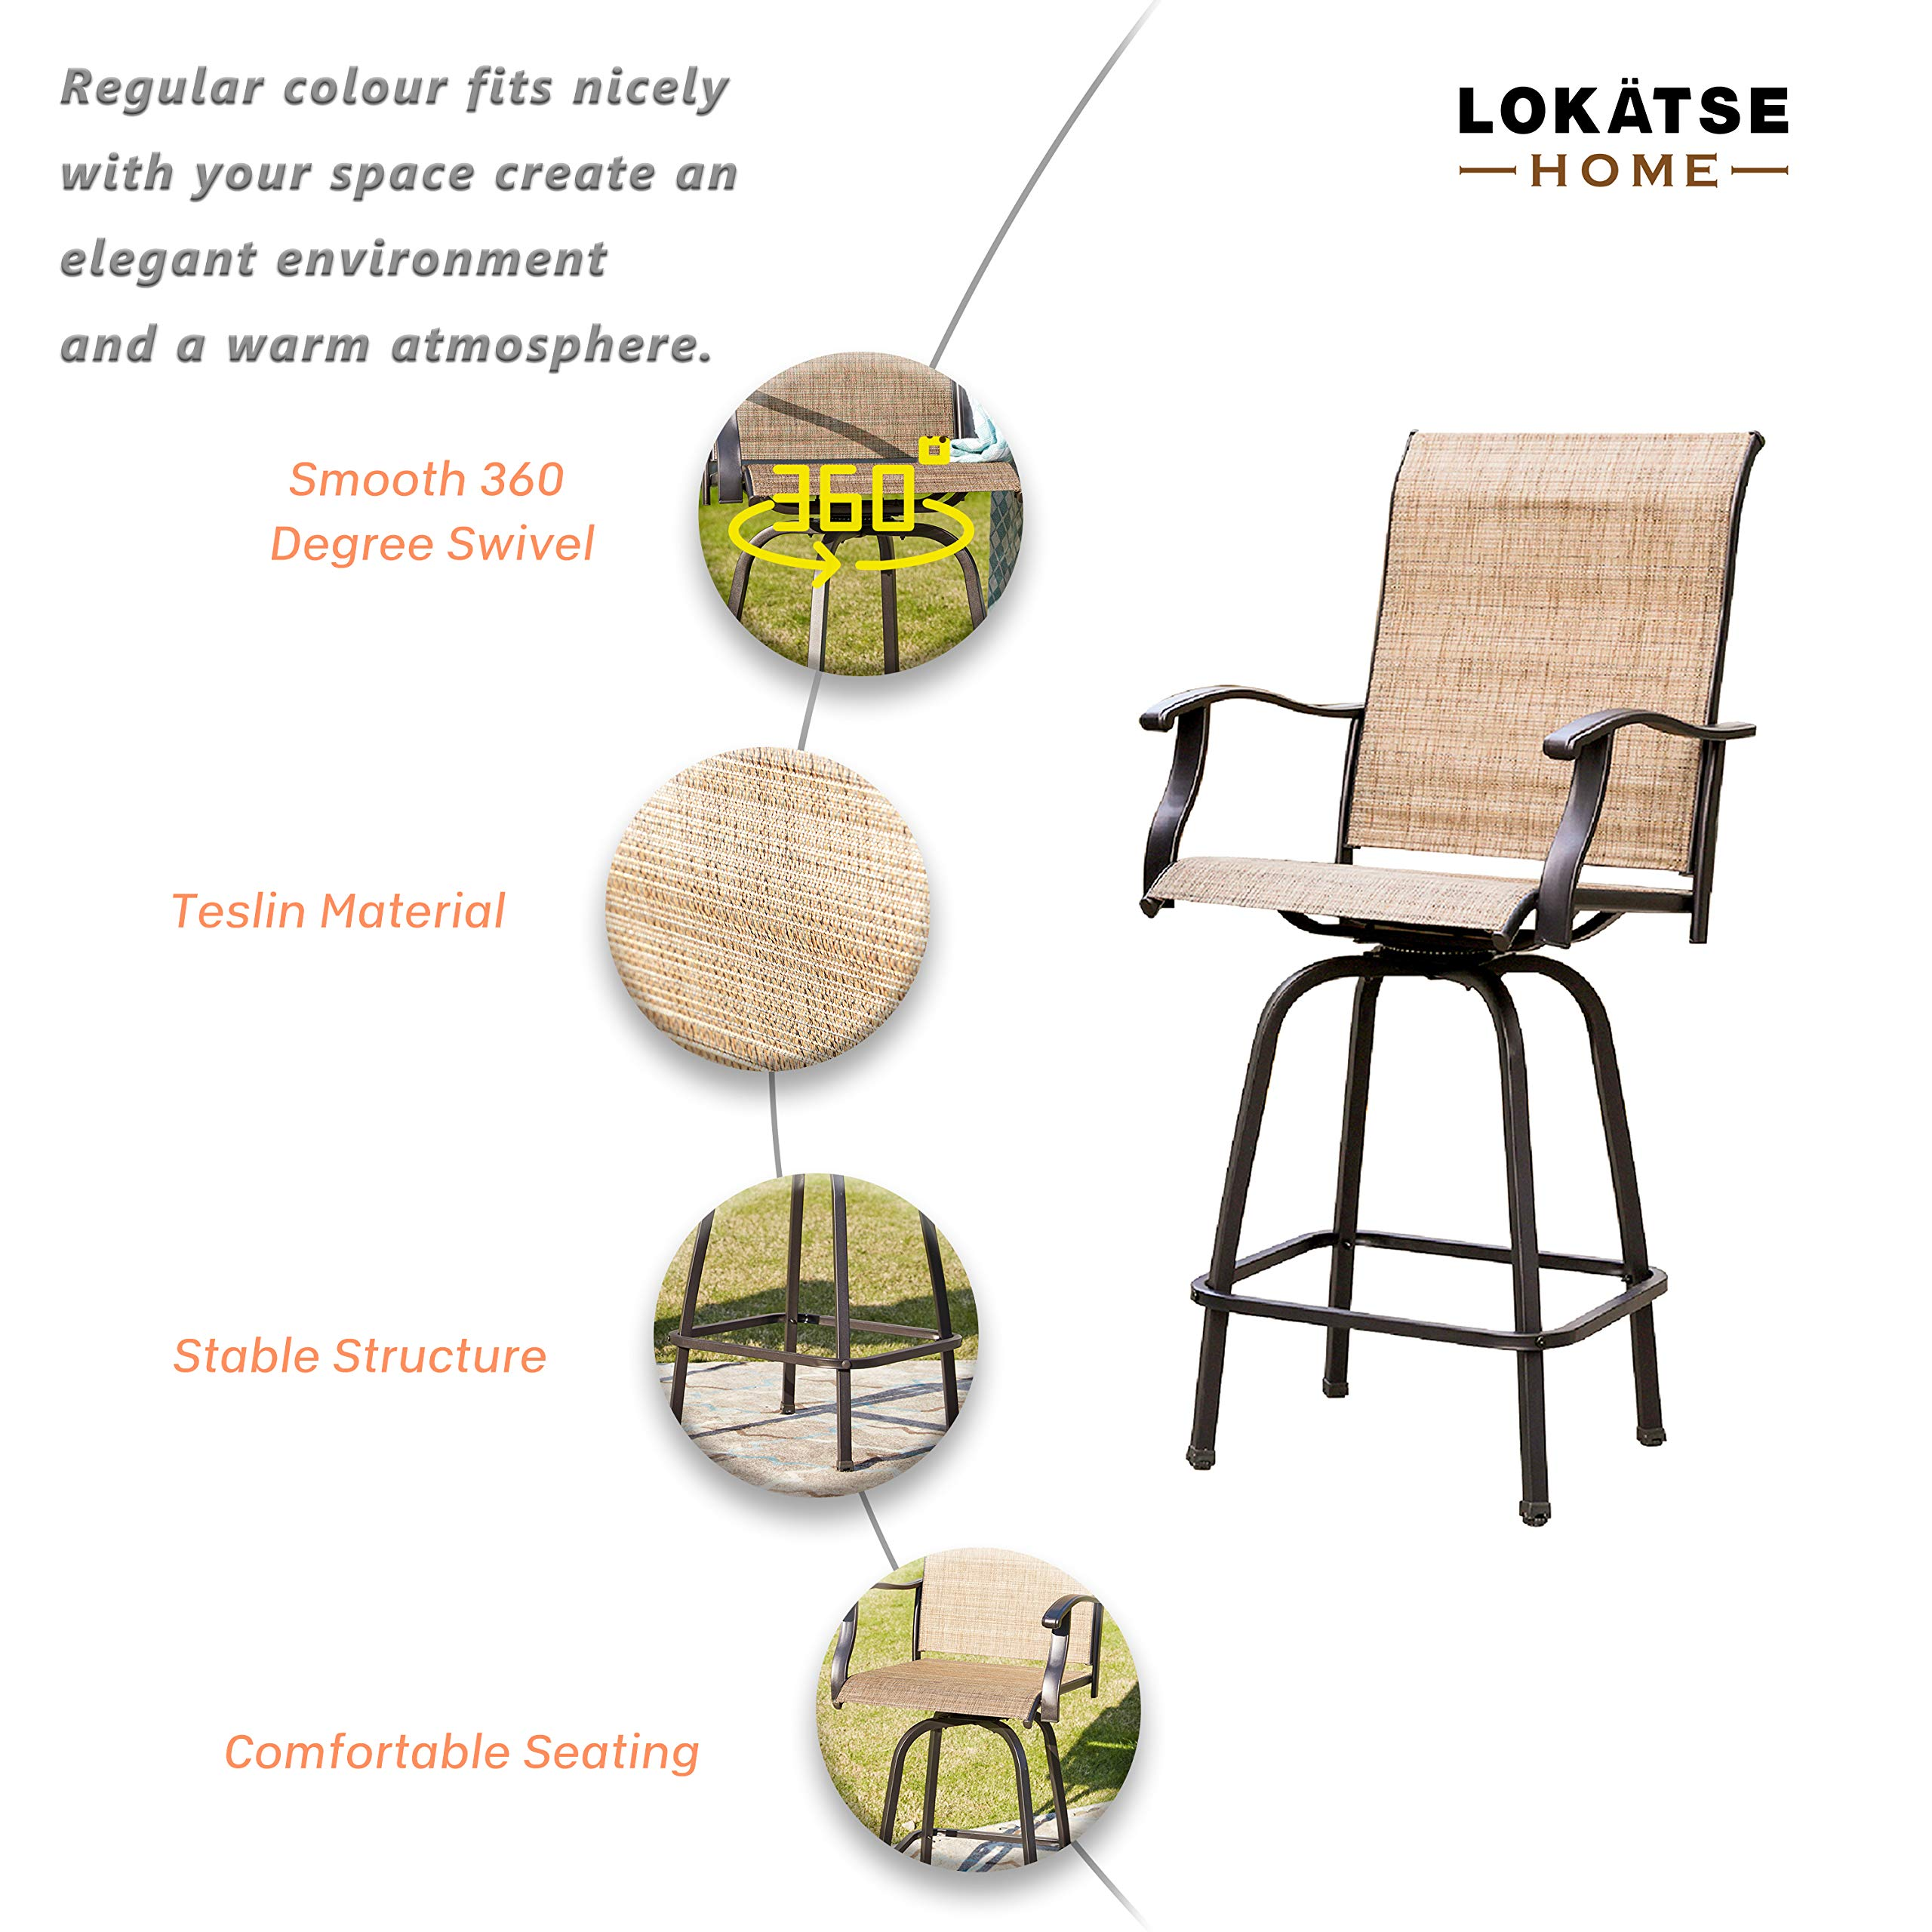 LOKATSE HOME 2 Piece Swivel Bar Stools Outdoor High Patio Chairs Furniture with All Weather Metal Frame, Beige-2chairs by LOKATSE HOME (Image #2)